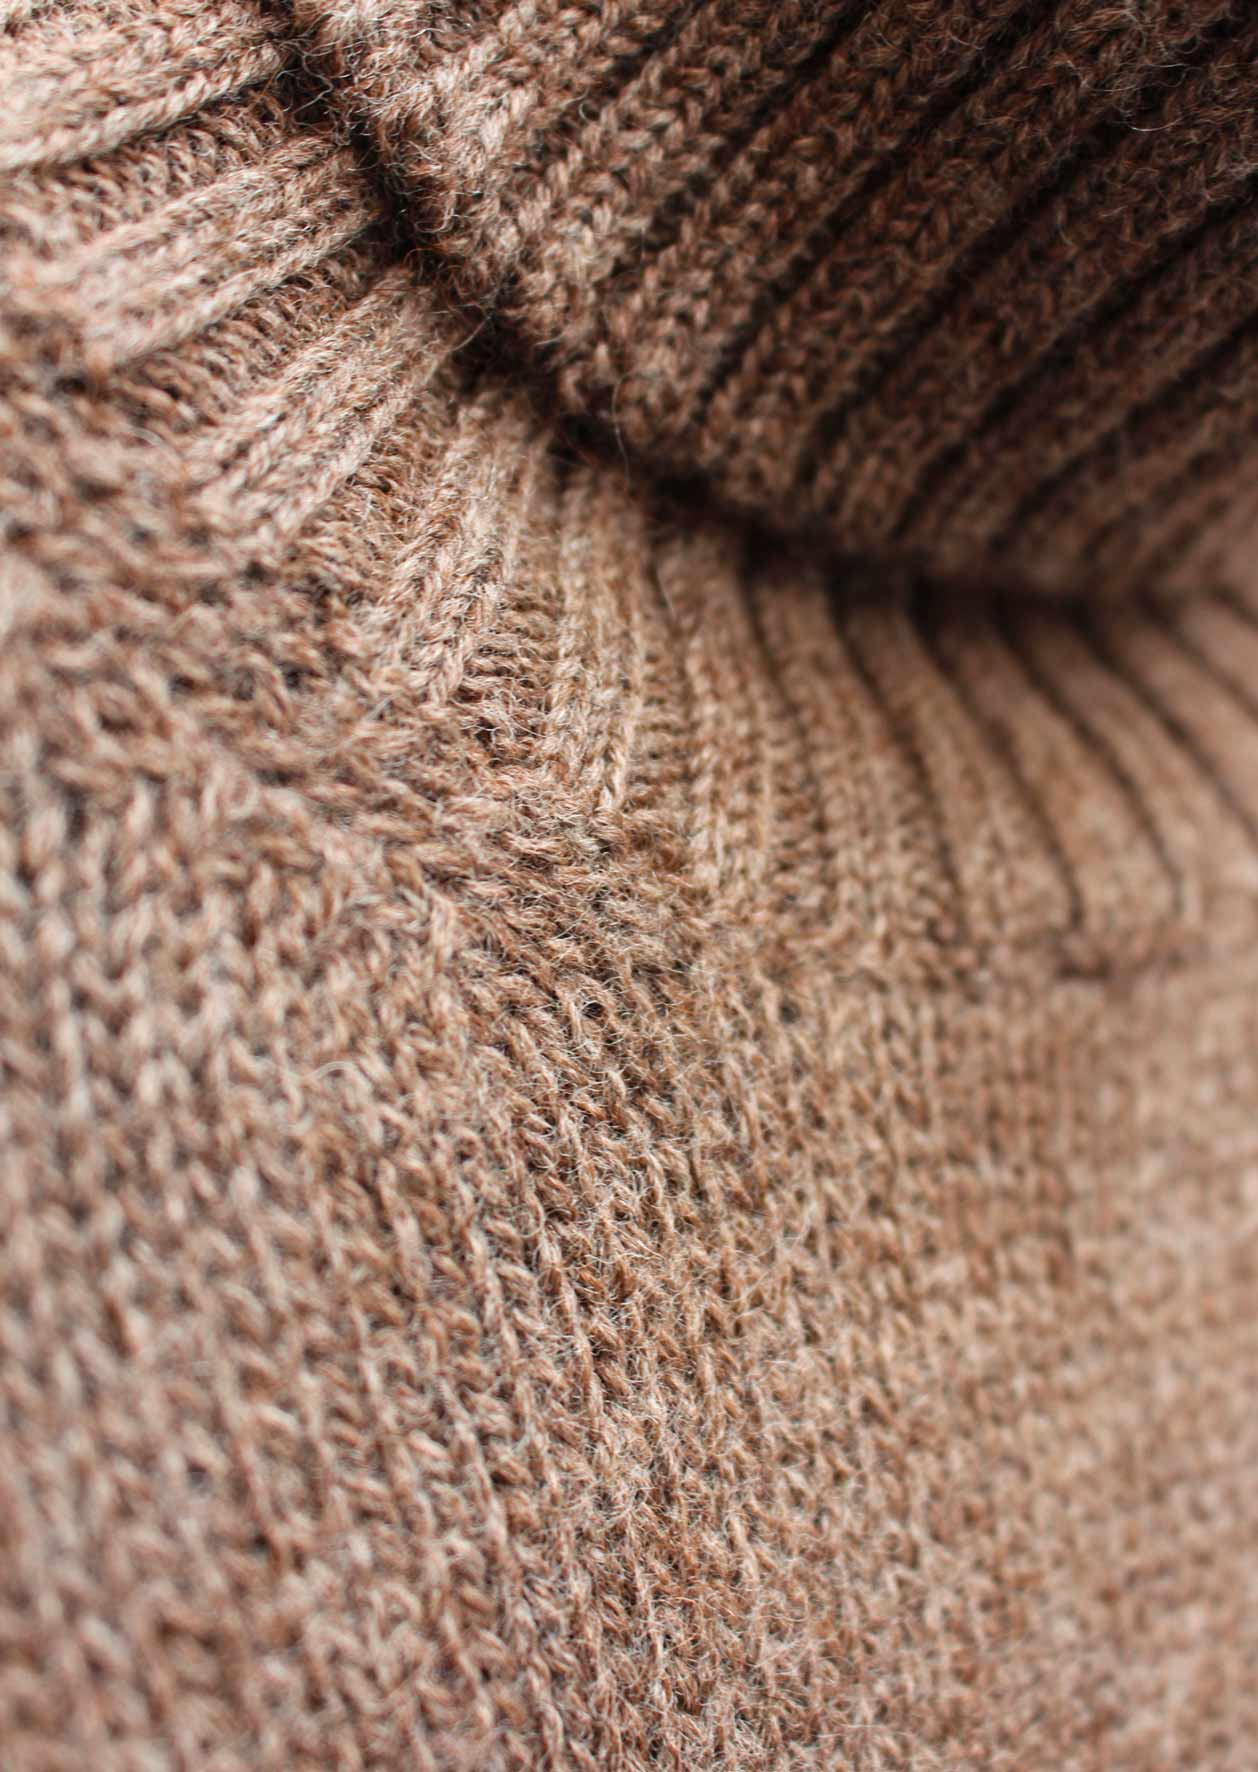 Turtle neck sweater - Peruvian superfine alpaca blend - Natural brown